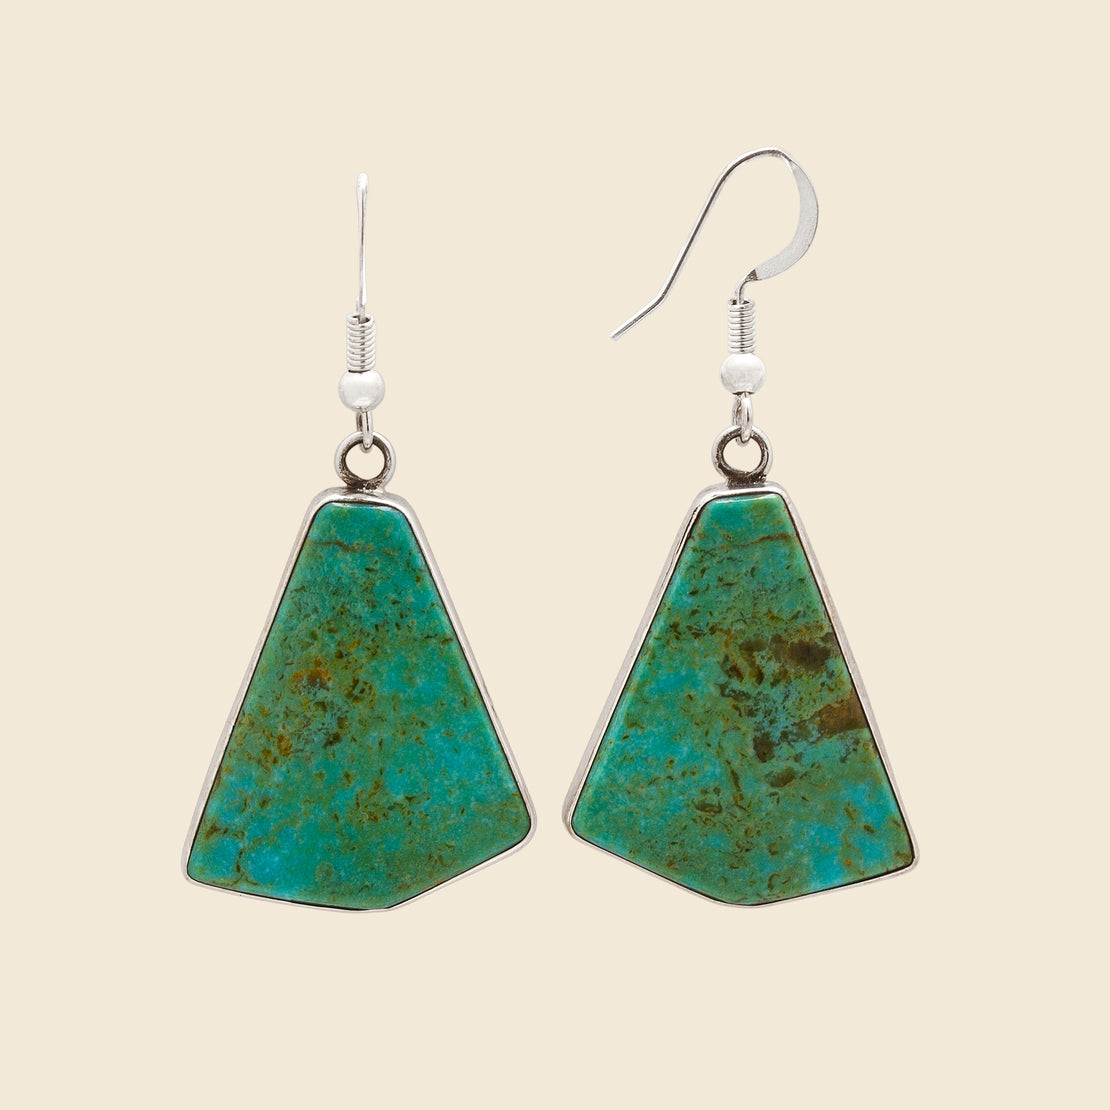 Vintage Sterling Backed Triangular Turquoise Dangle Hook Earrings - Silver/Green